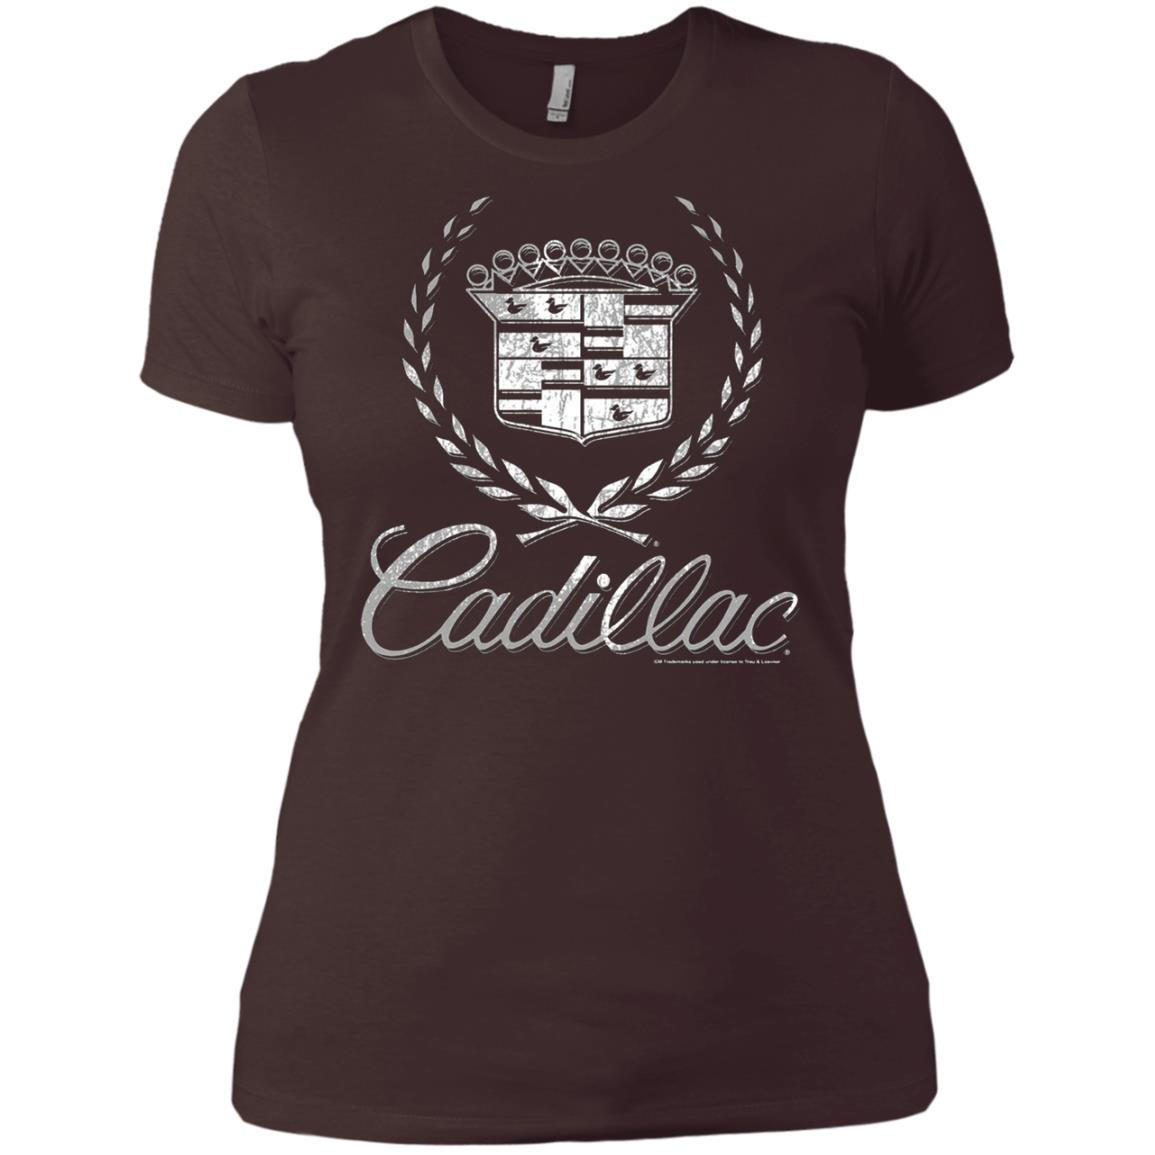 Cadillac Logo T-Shirt Classic Look - Ladies' Boyfriend T-Shirt Style / Color / Size